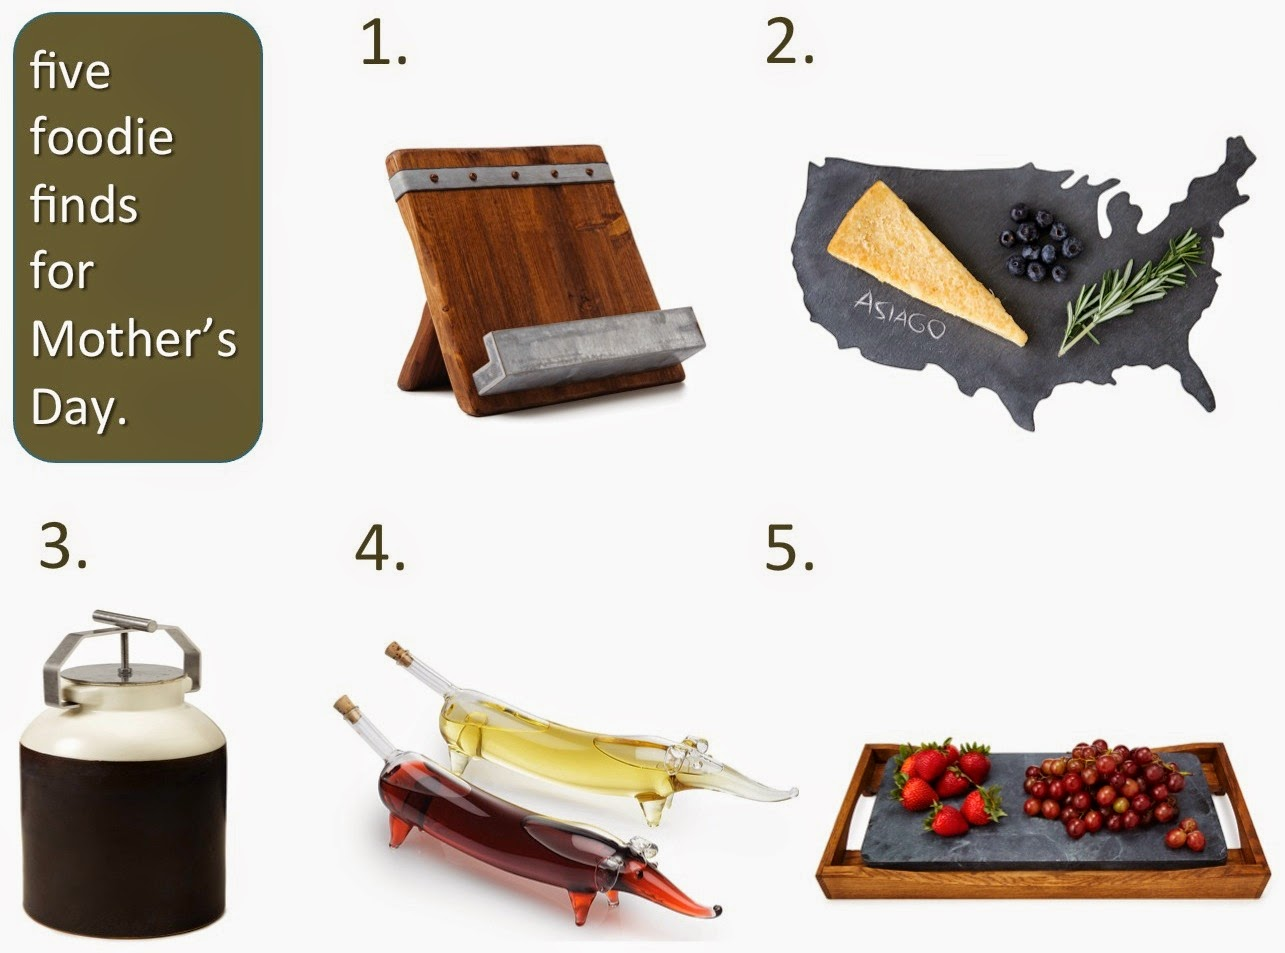 uncommon goods Five Foodie Finds for Mother's Day (c)nwafoodie